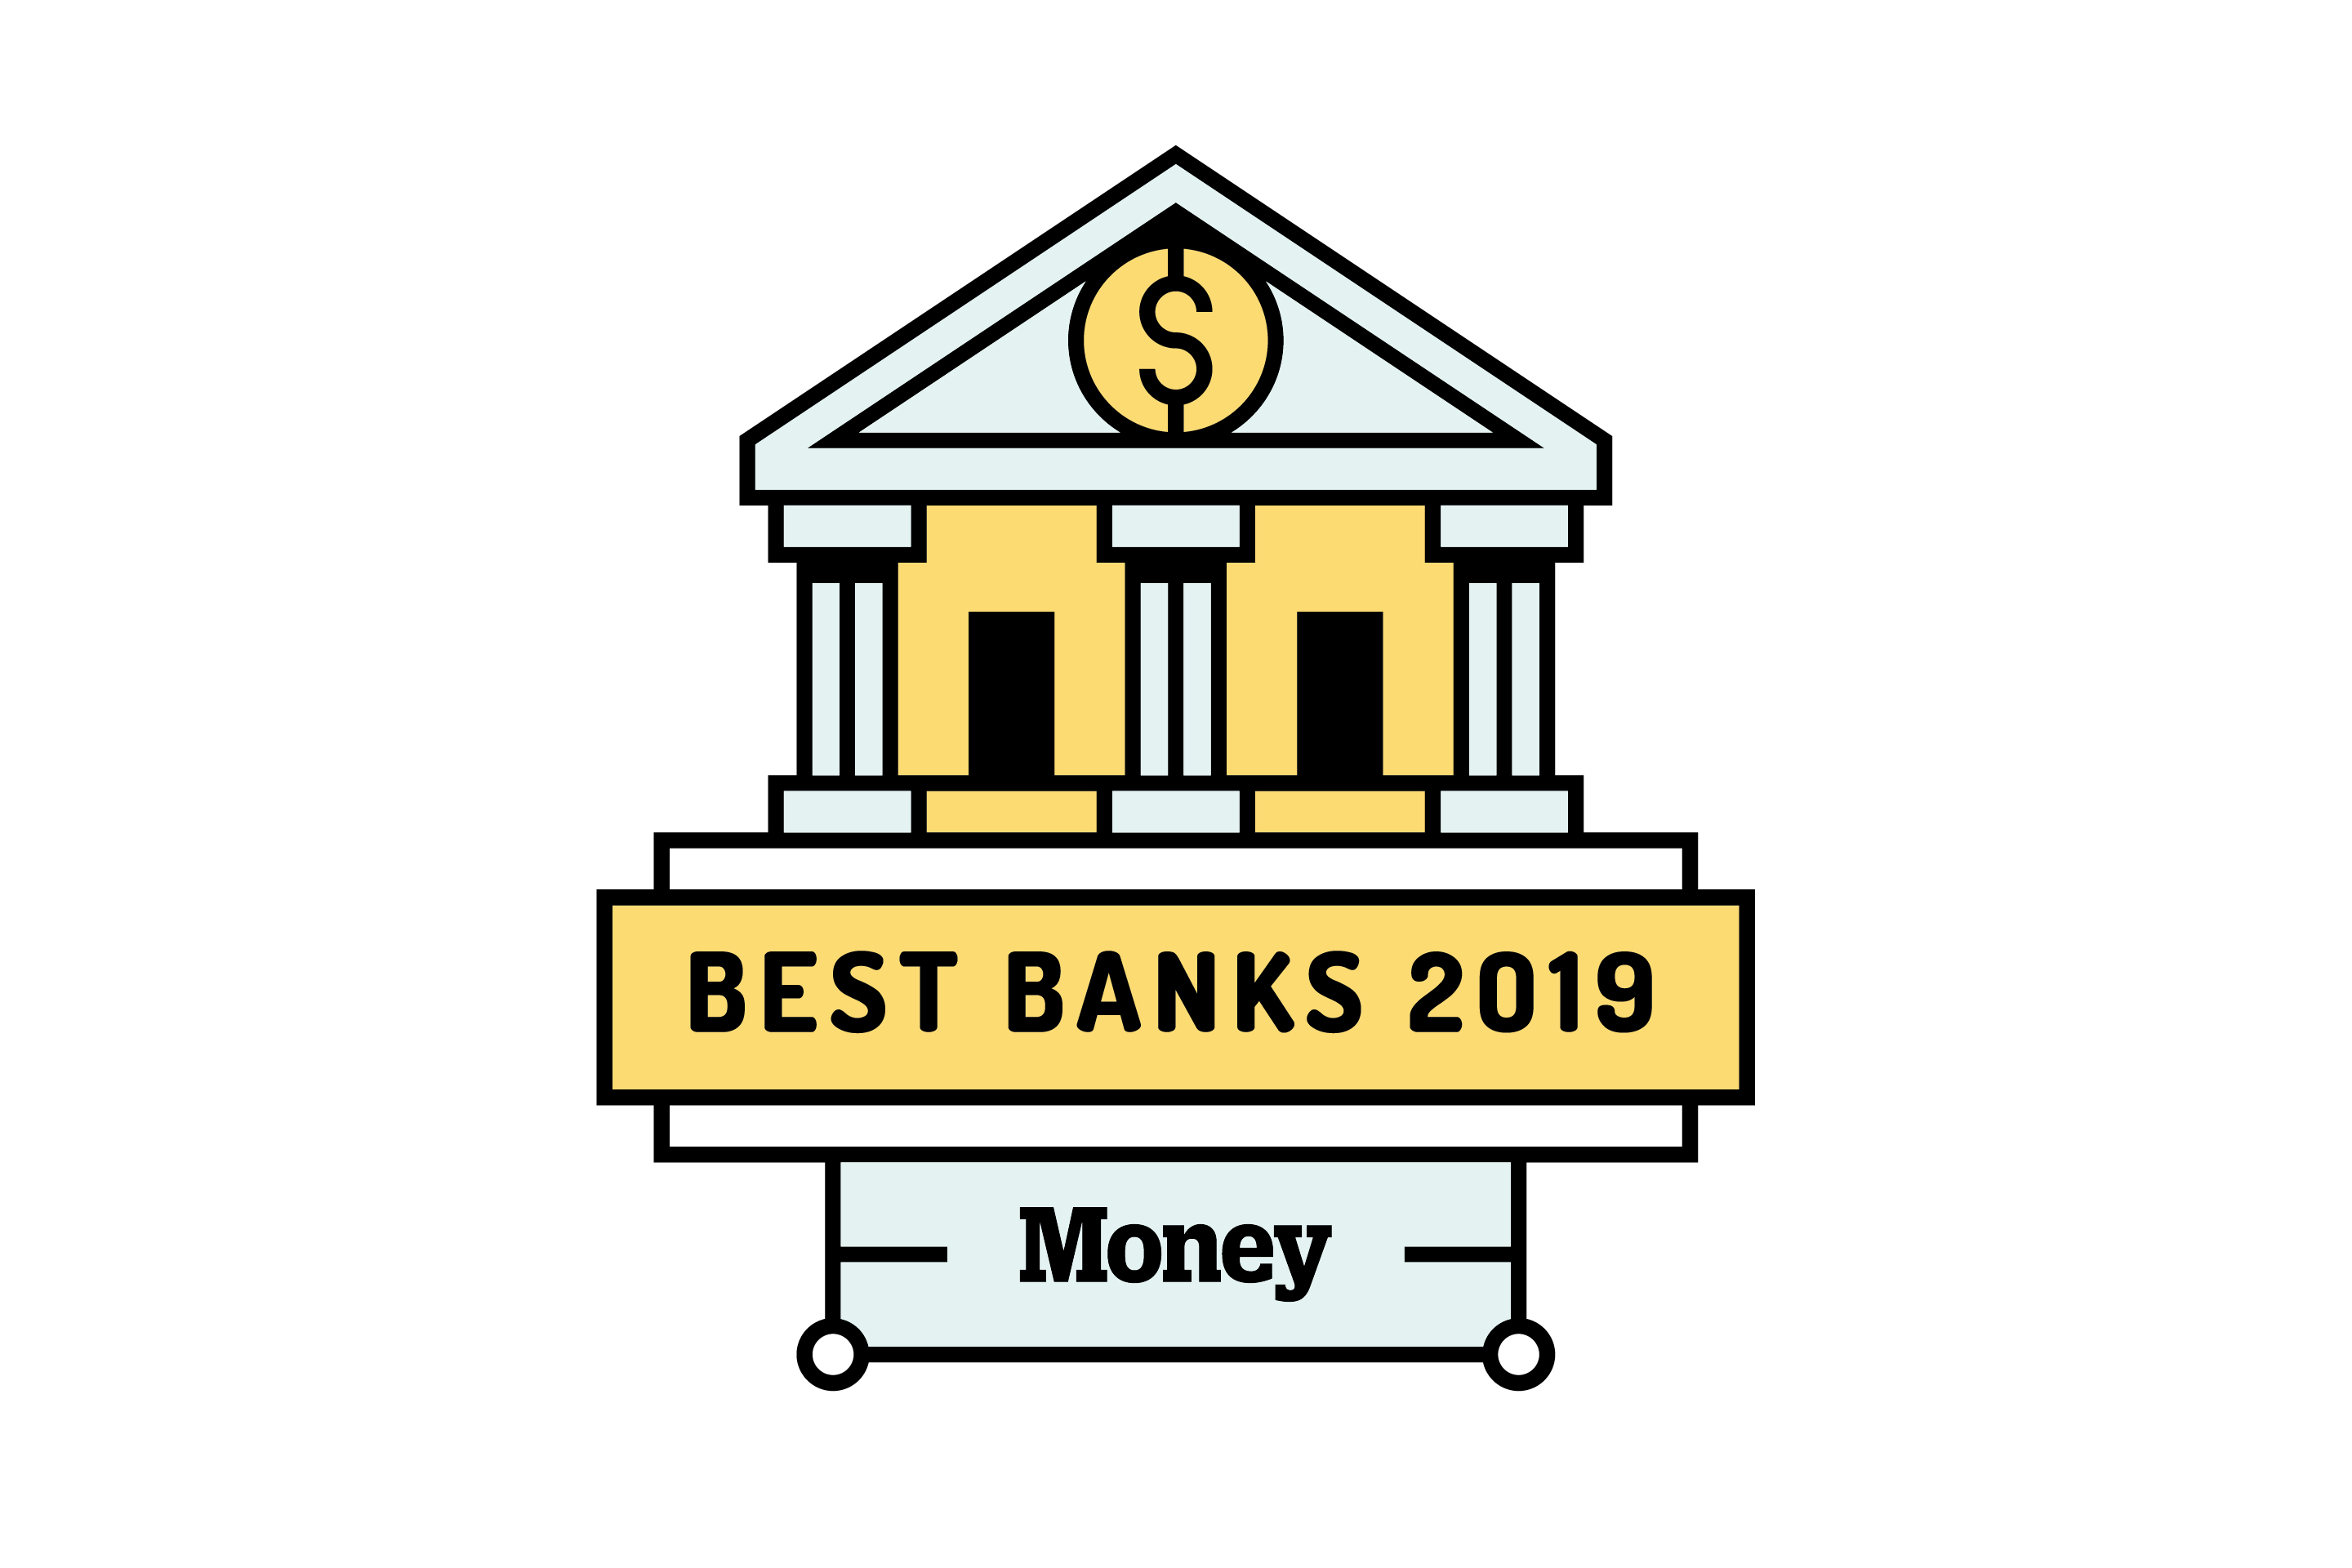 Woodforest bank logo clipart banner free This Is the Best Bank for Frequent Travelers in 2019 | Money banner free